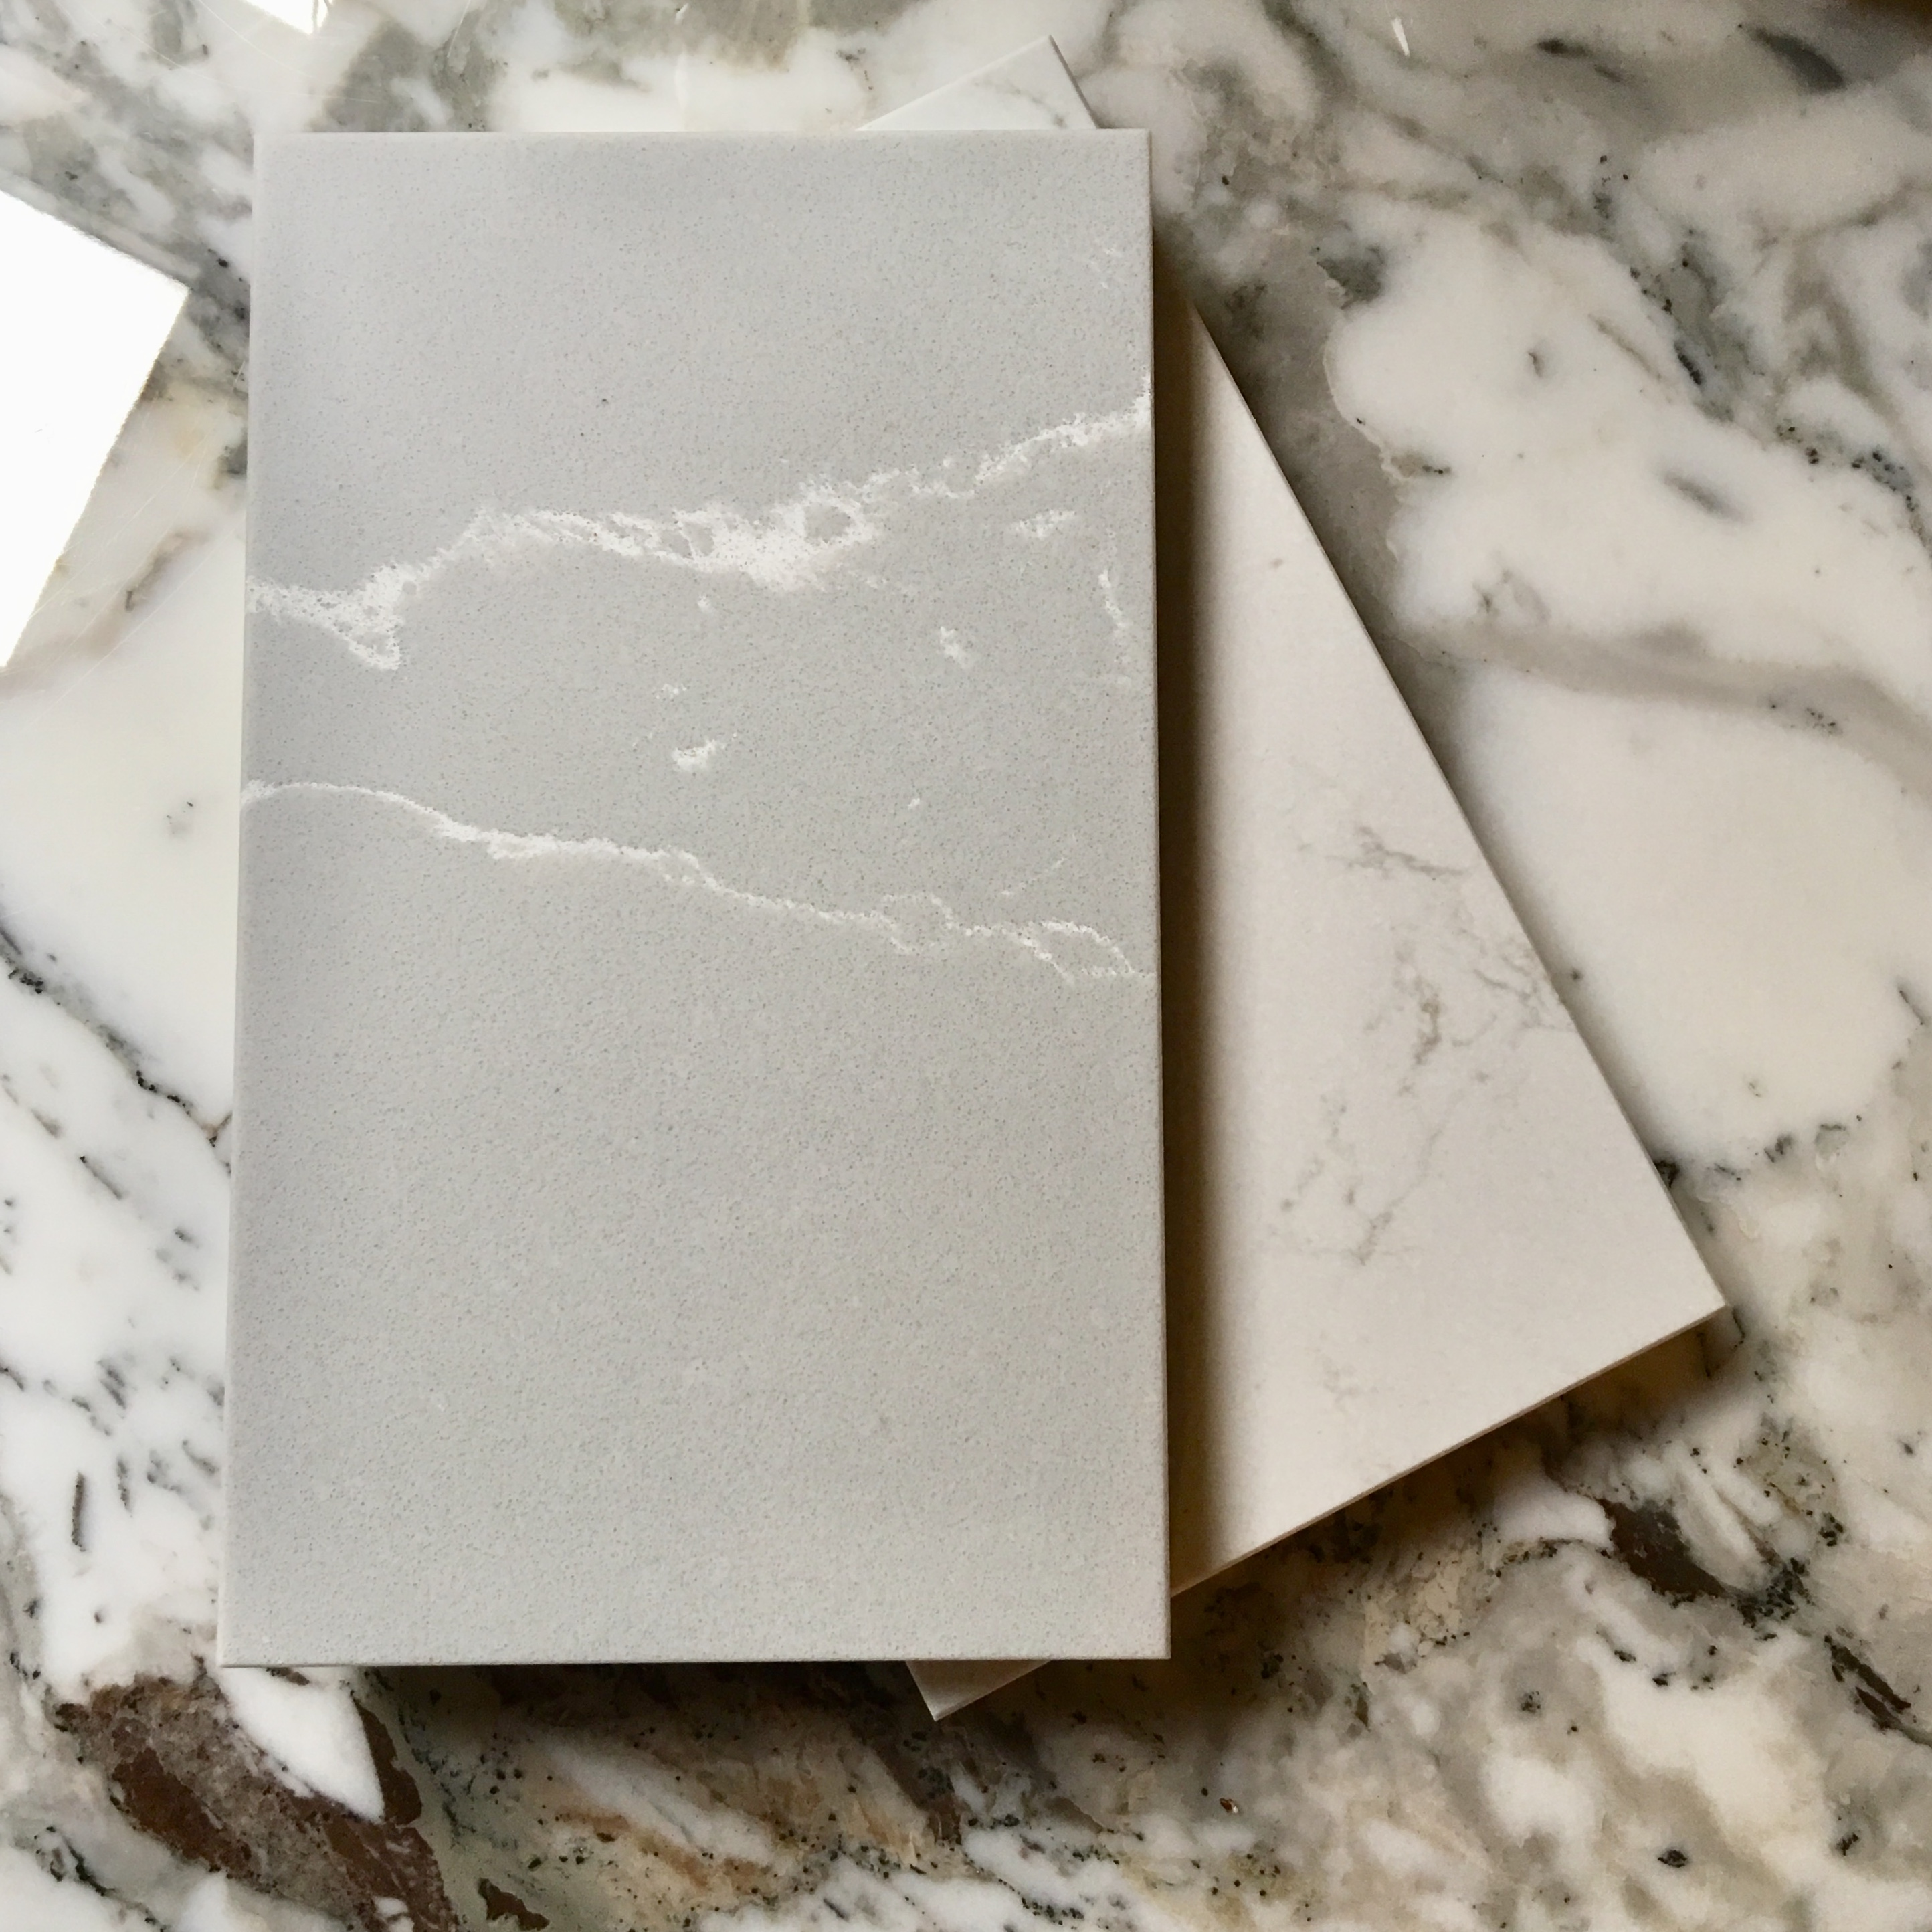 From the Compac 'Unique' collection of faux marble solid surfacing materials. Top: 'Unique Argento' sample, underneath 'Unique Arabescato' sample, both shown on top of a Knoll Saarinen table Arabescato marble top.